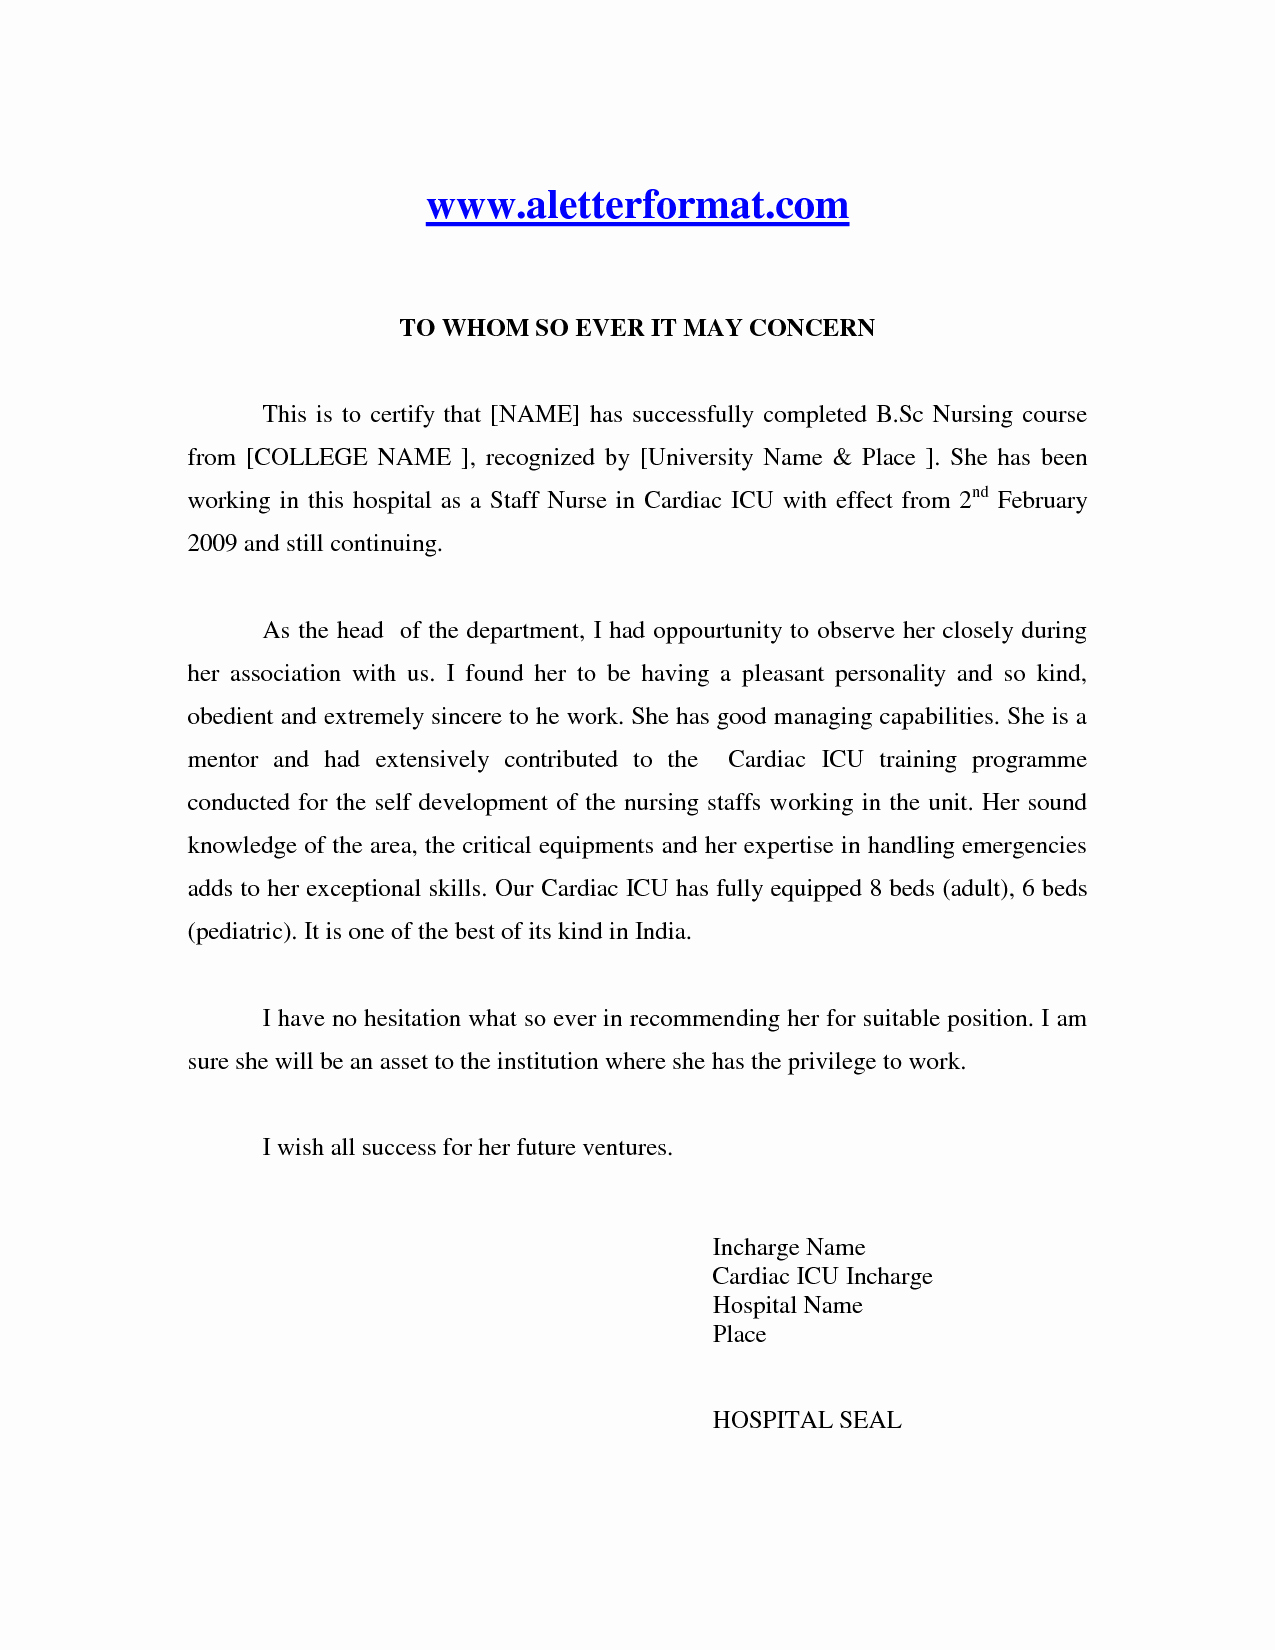 Recommendation Letter for Nurse Practitioner Beautiful Sample Re Mendation Letter for Nursing Hashtag Bg